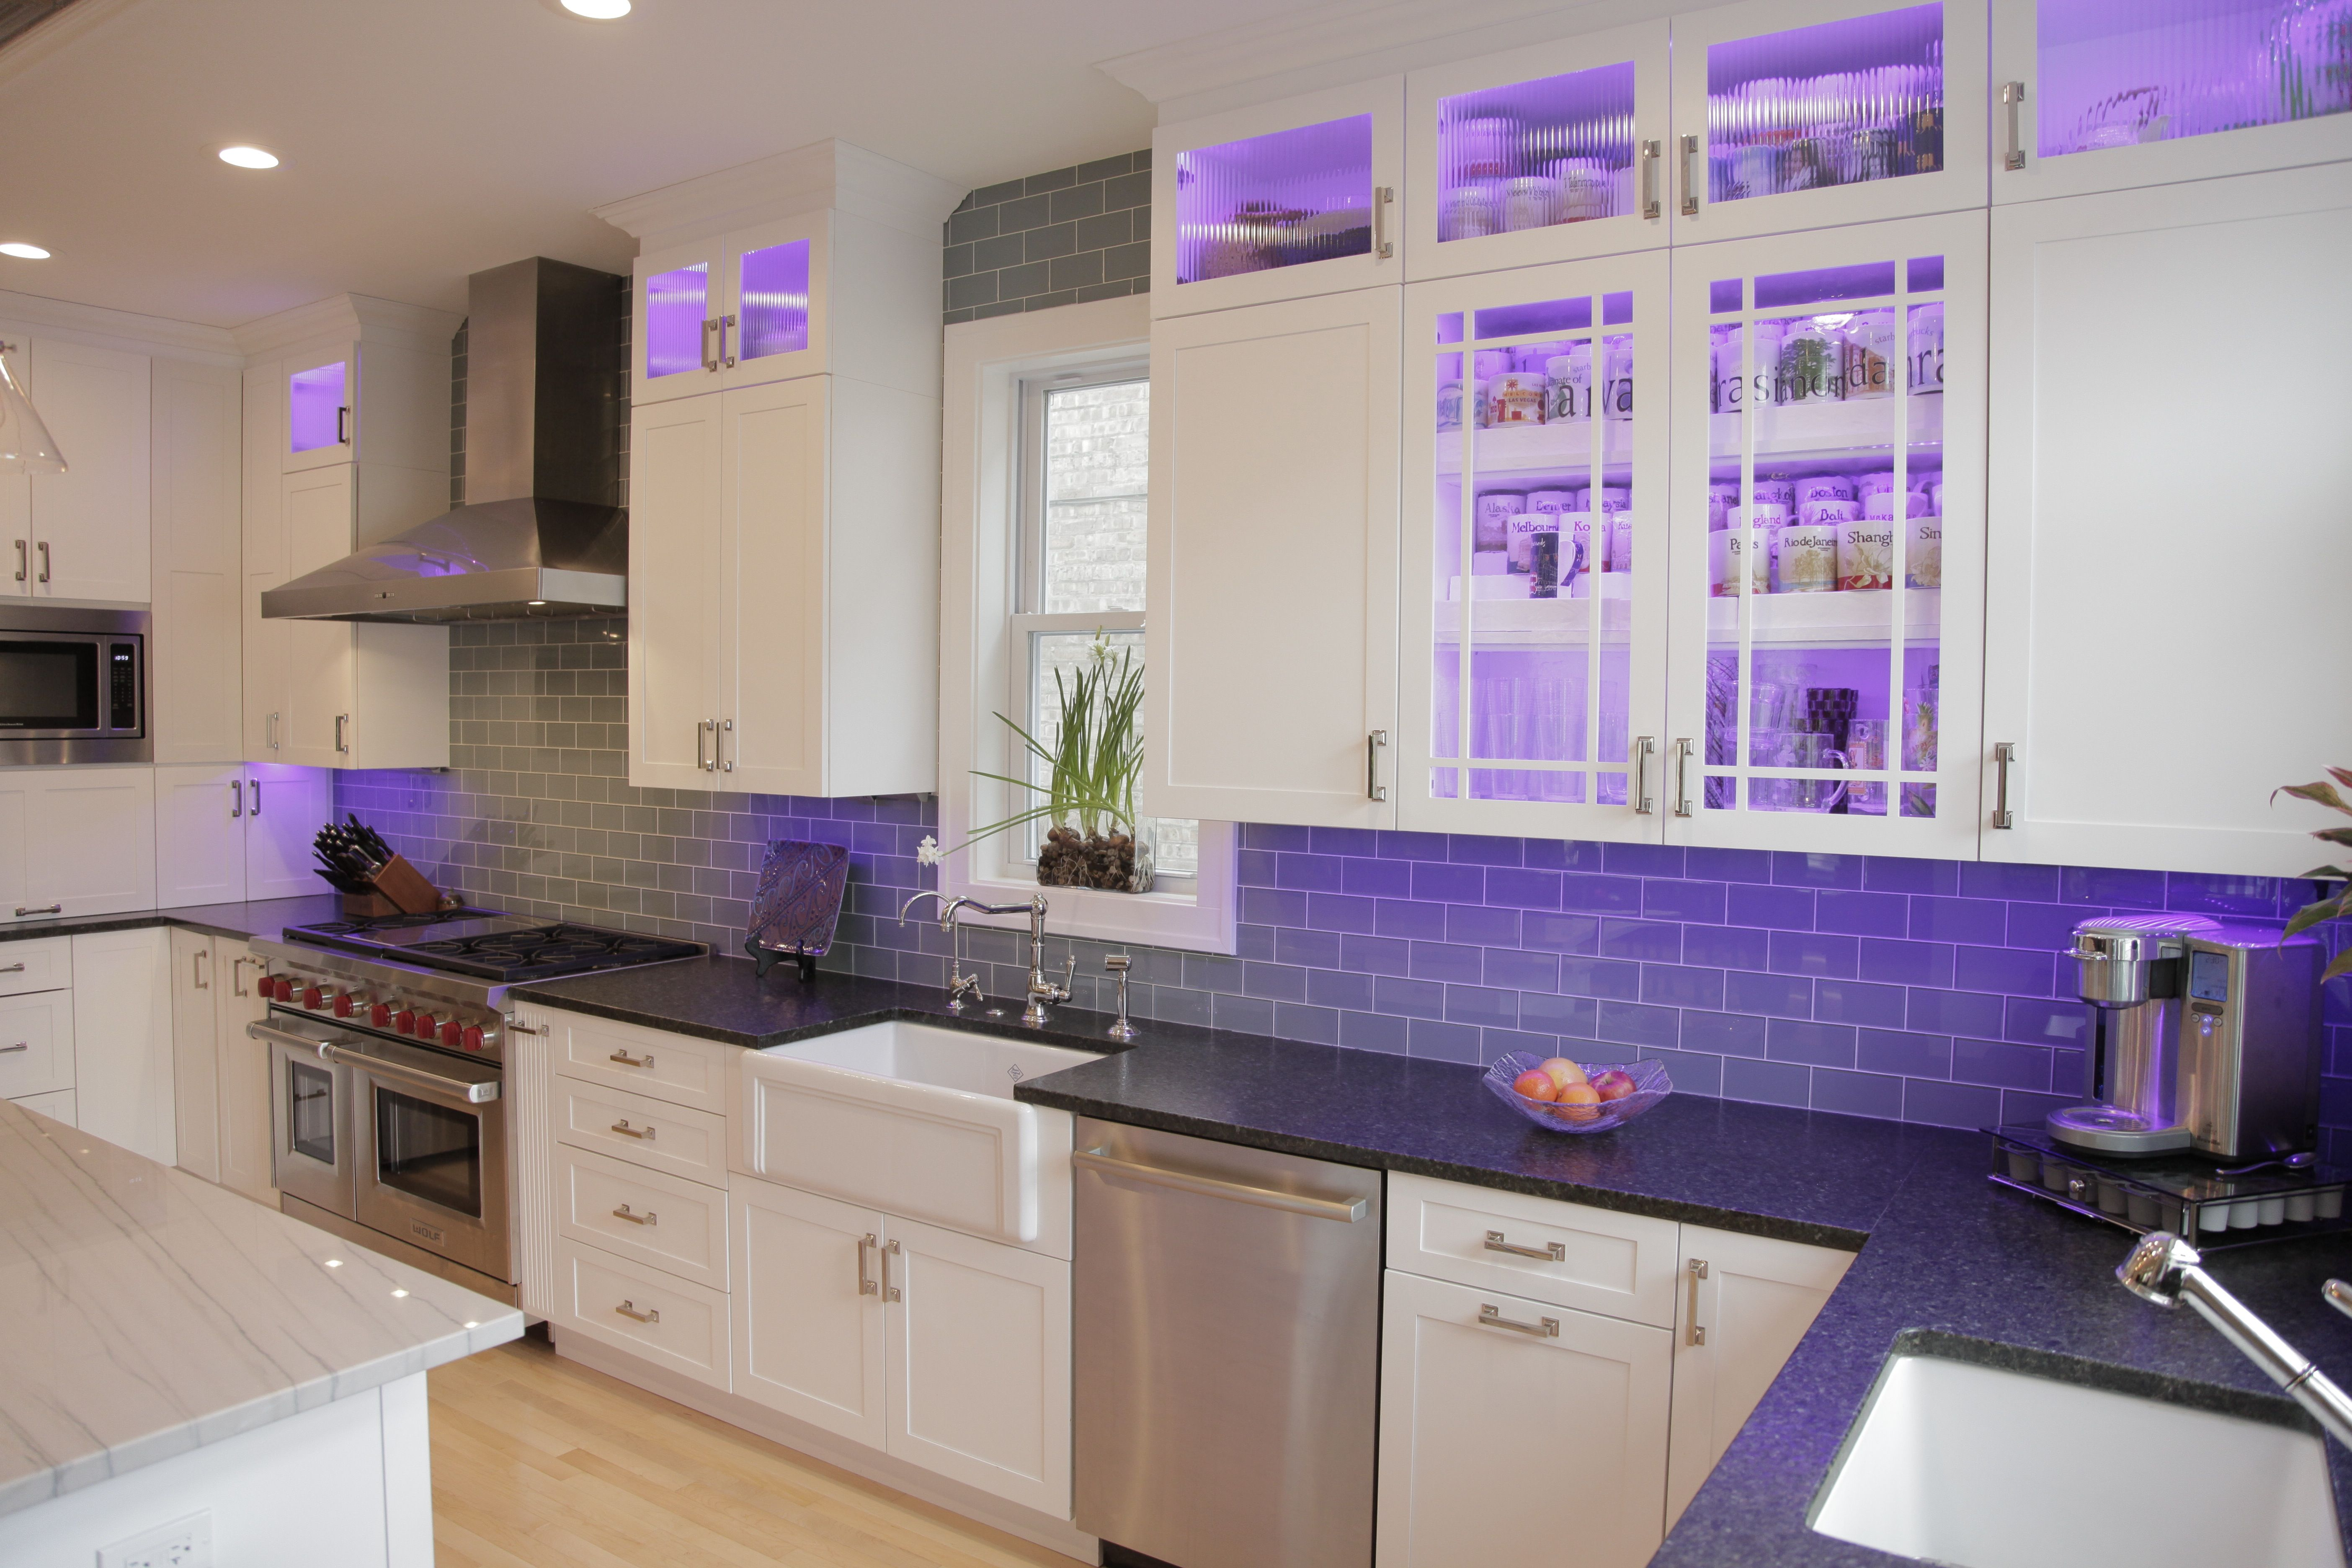 Kitchen Remodel In Chicago Il By Budget Right Kitchens In Cabinet Led Lighting Changes Colors Kitchen Remodel Kitchen Kitchen Cabinets